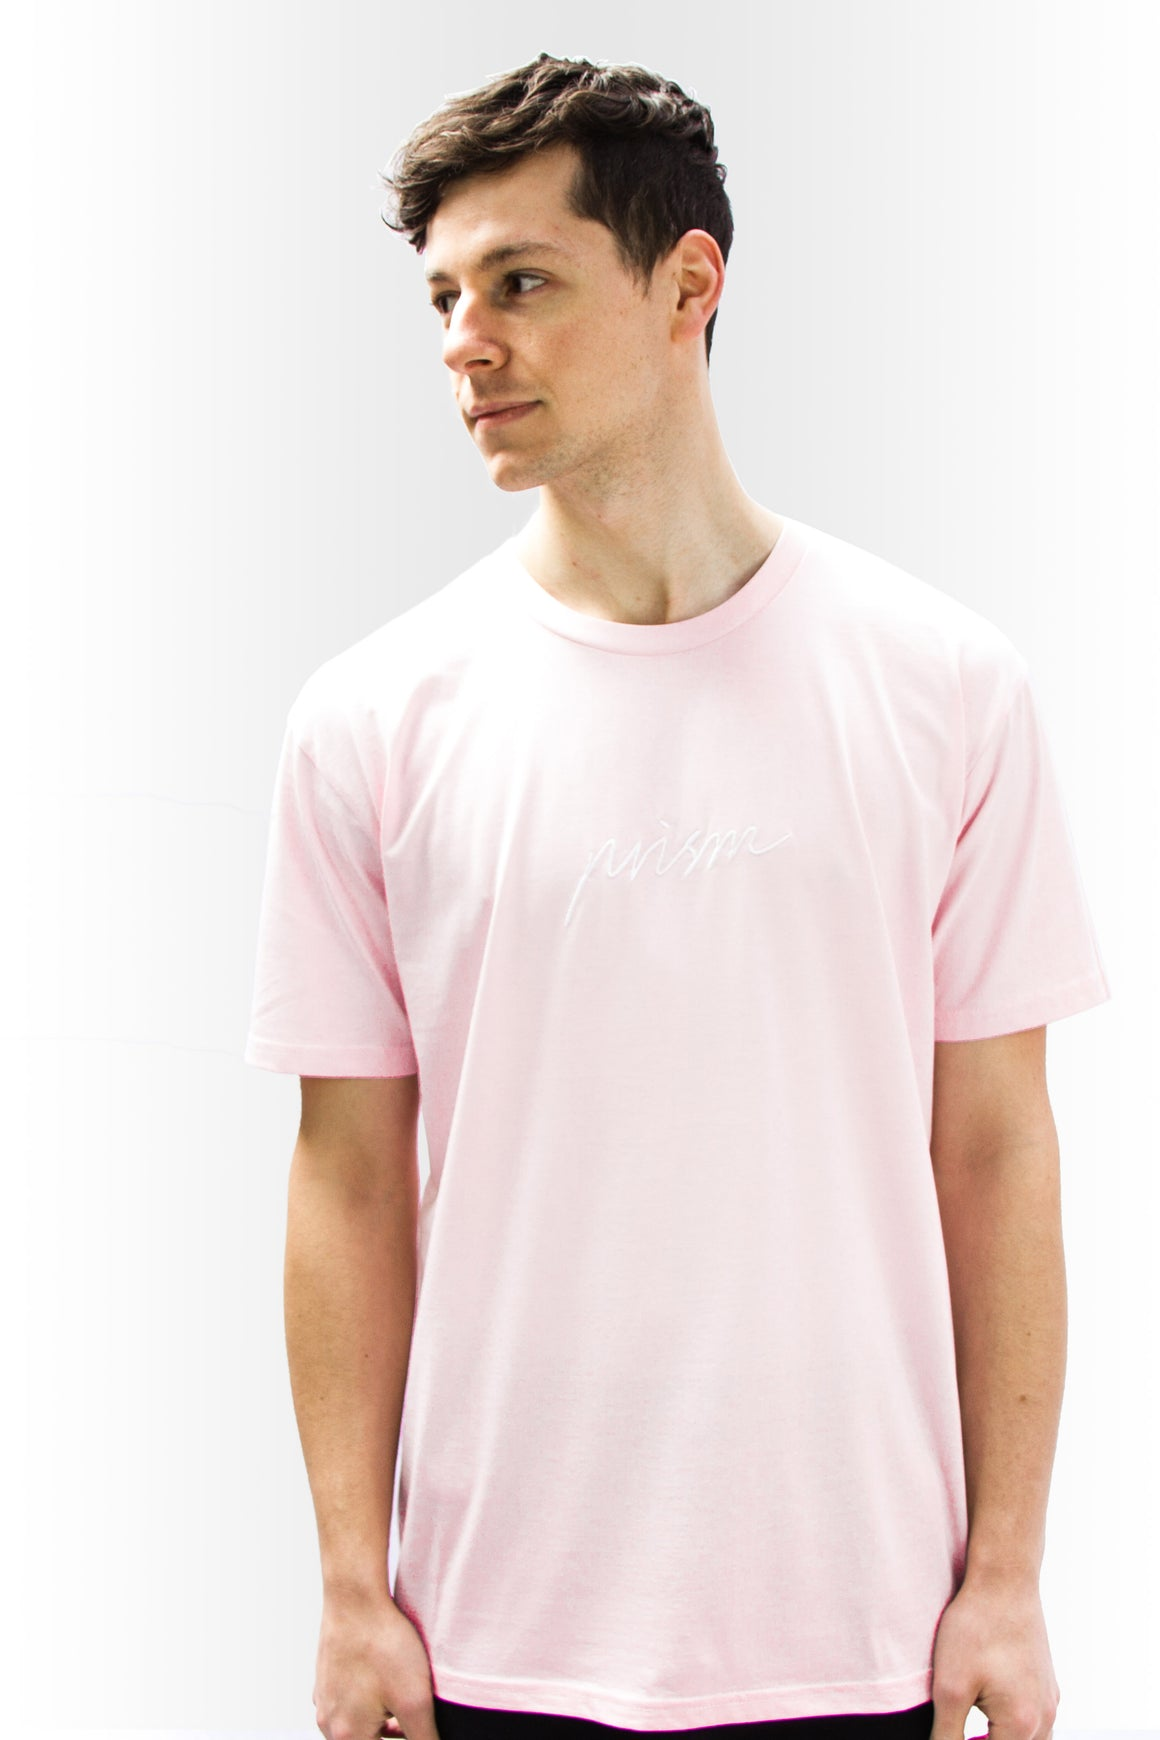 Script Tee - PINK - Prism Collective